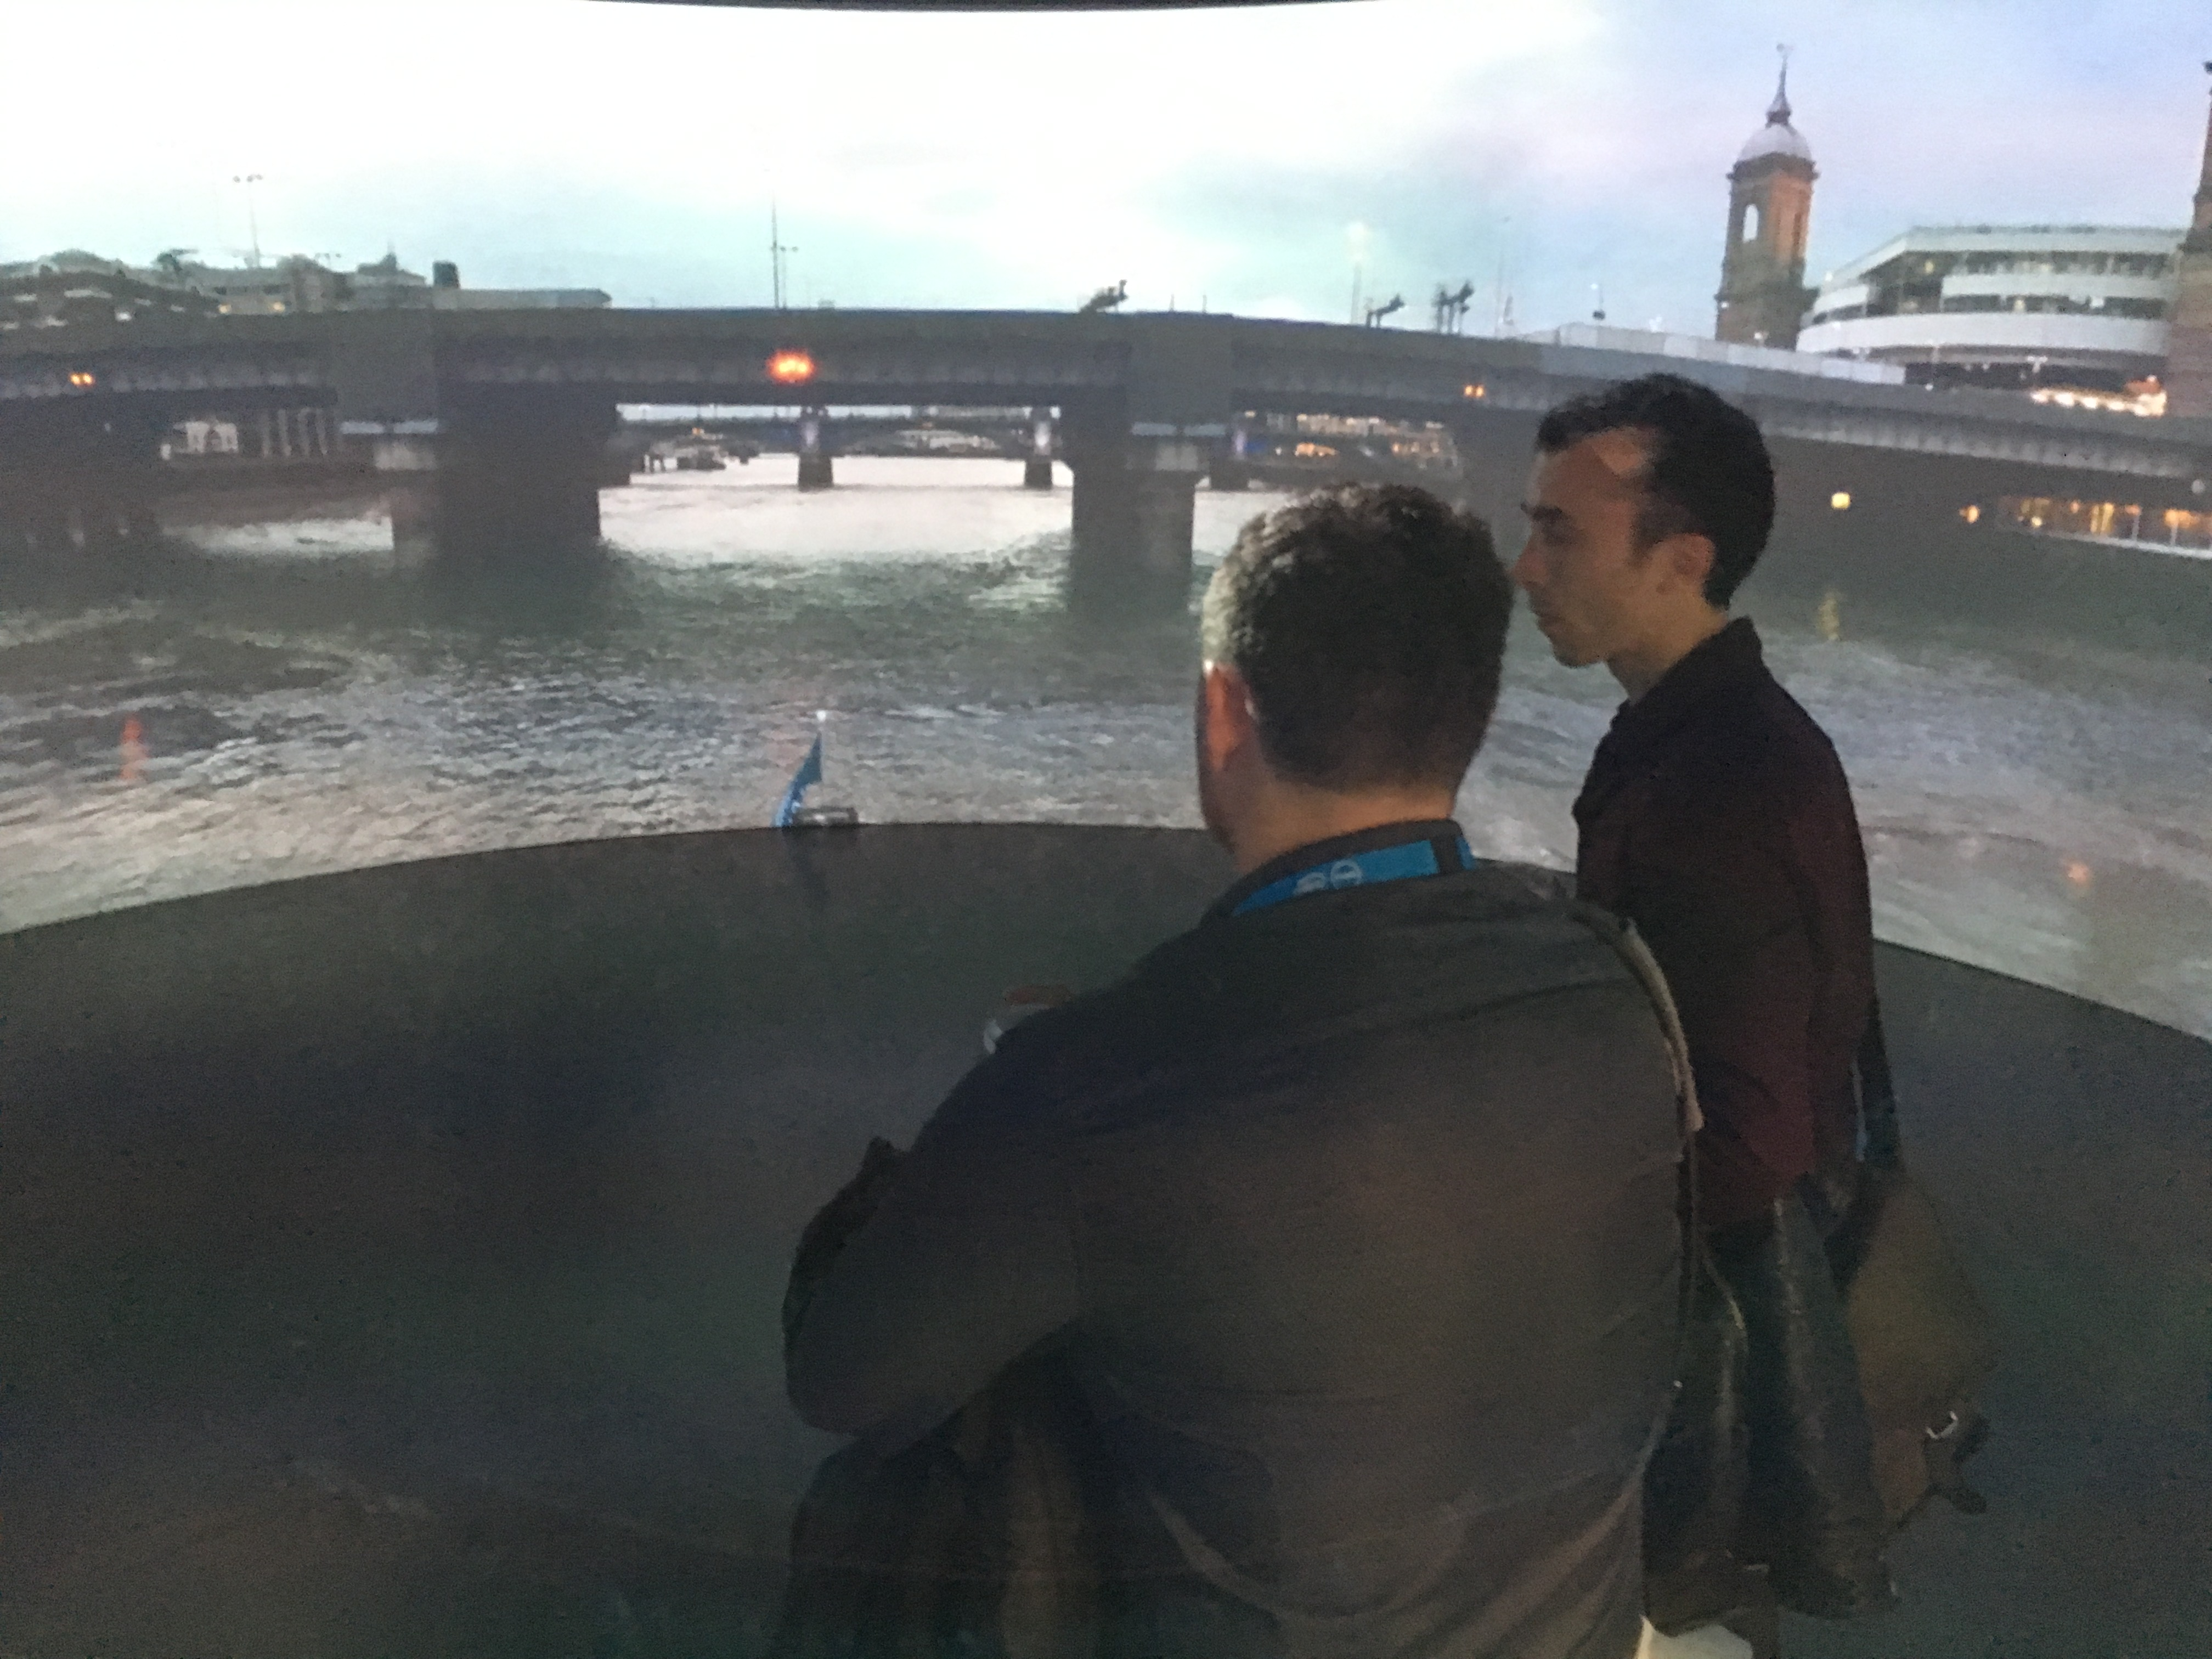 South West video production London Olympia VR conference. The Igloo Vision 360 dome acting as a VR environment around you.